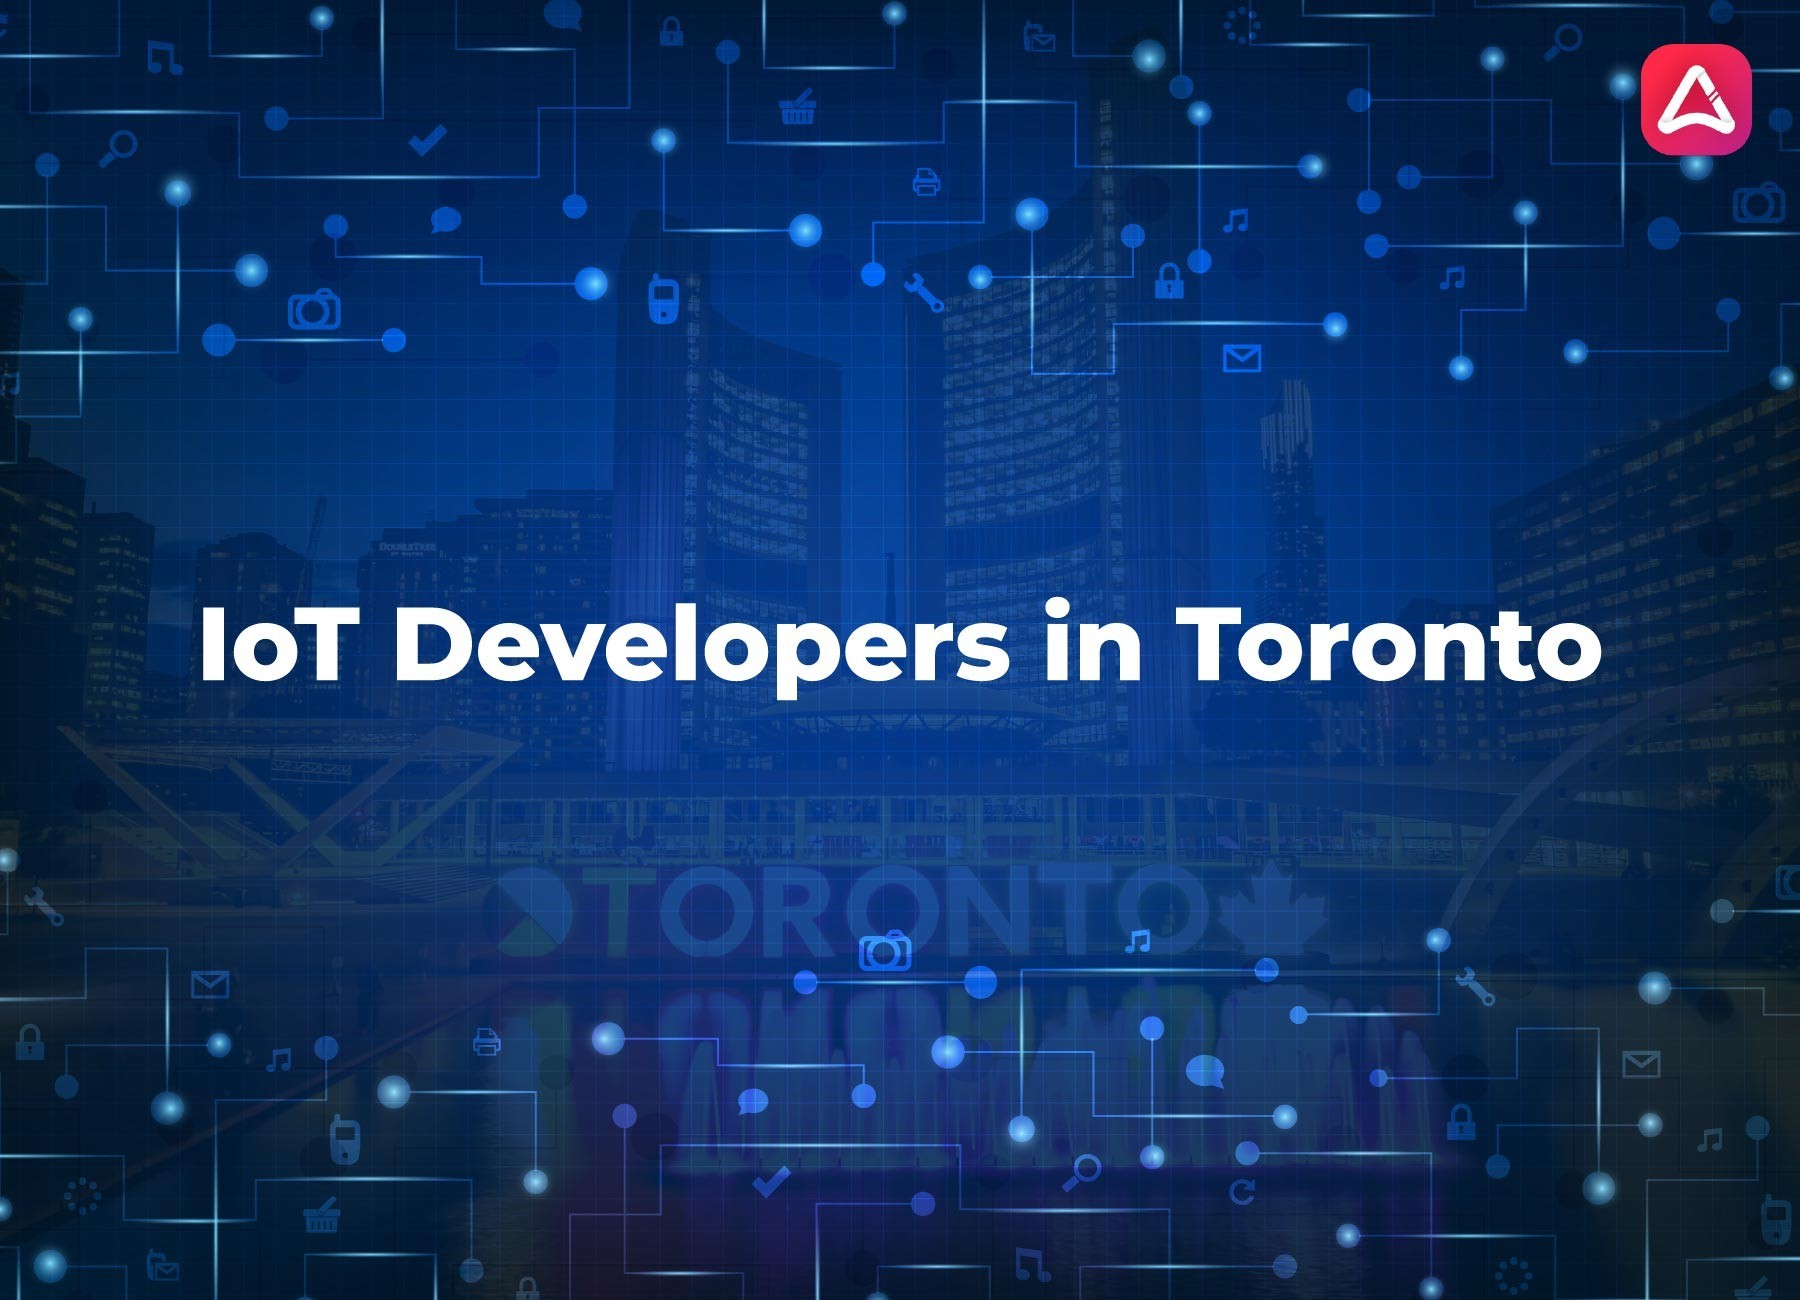 Iot Developers in Toronto